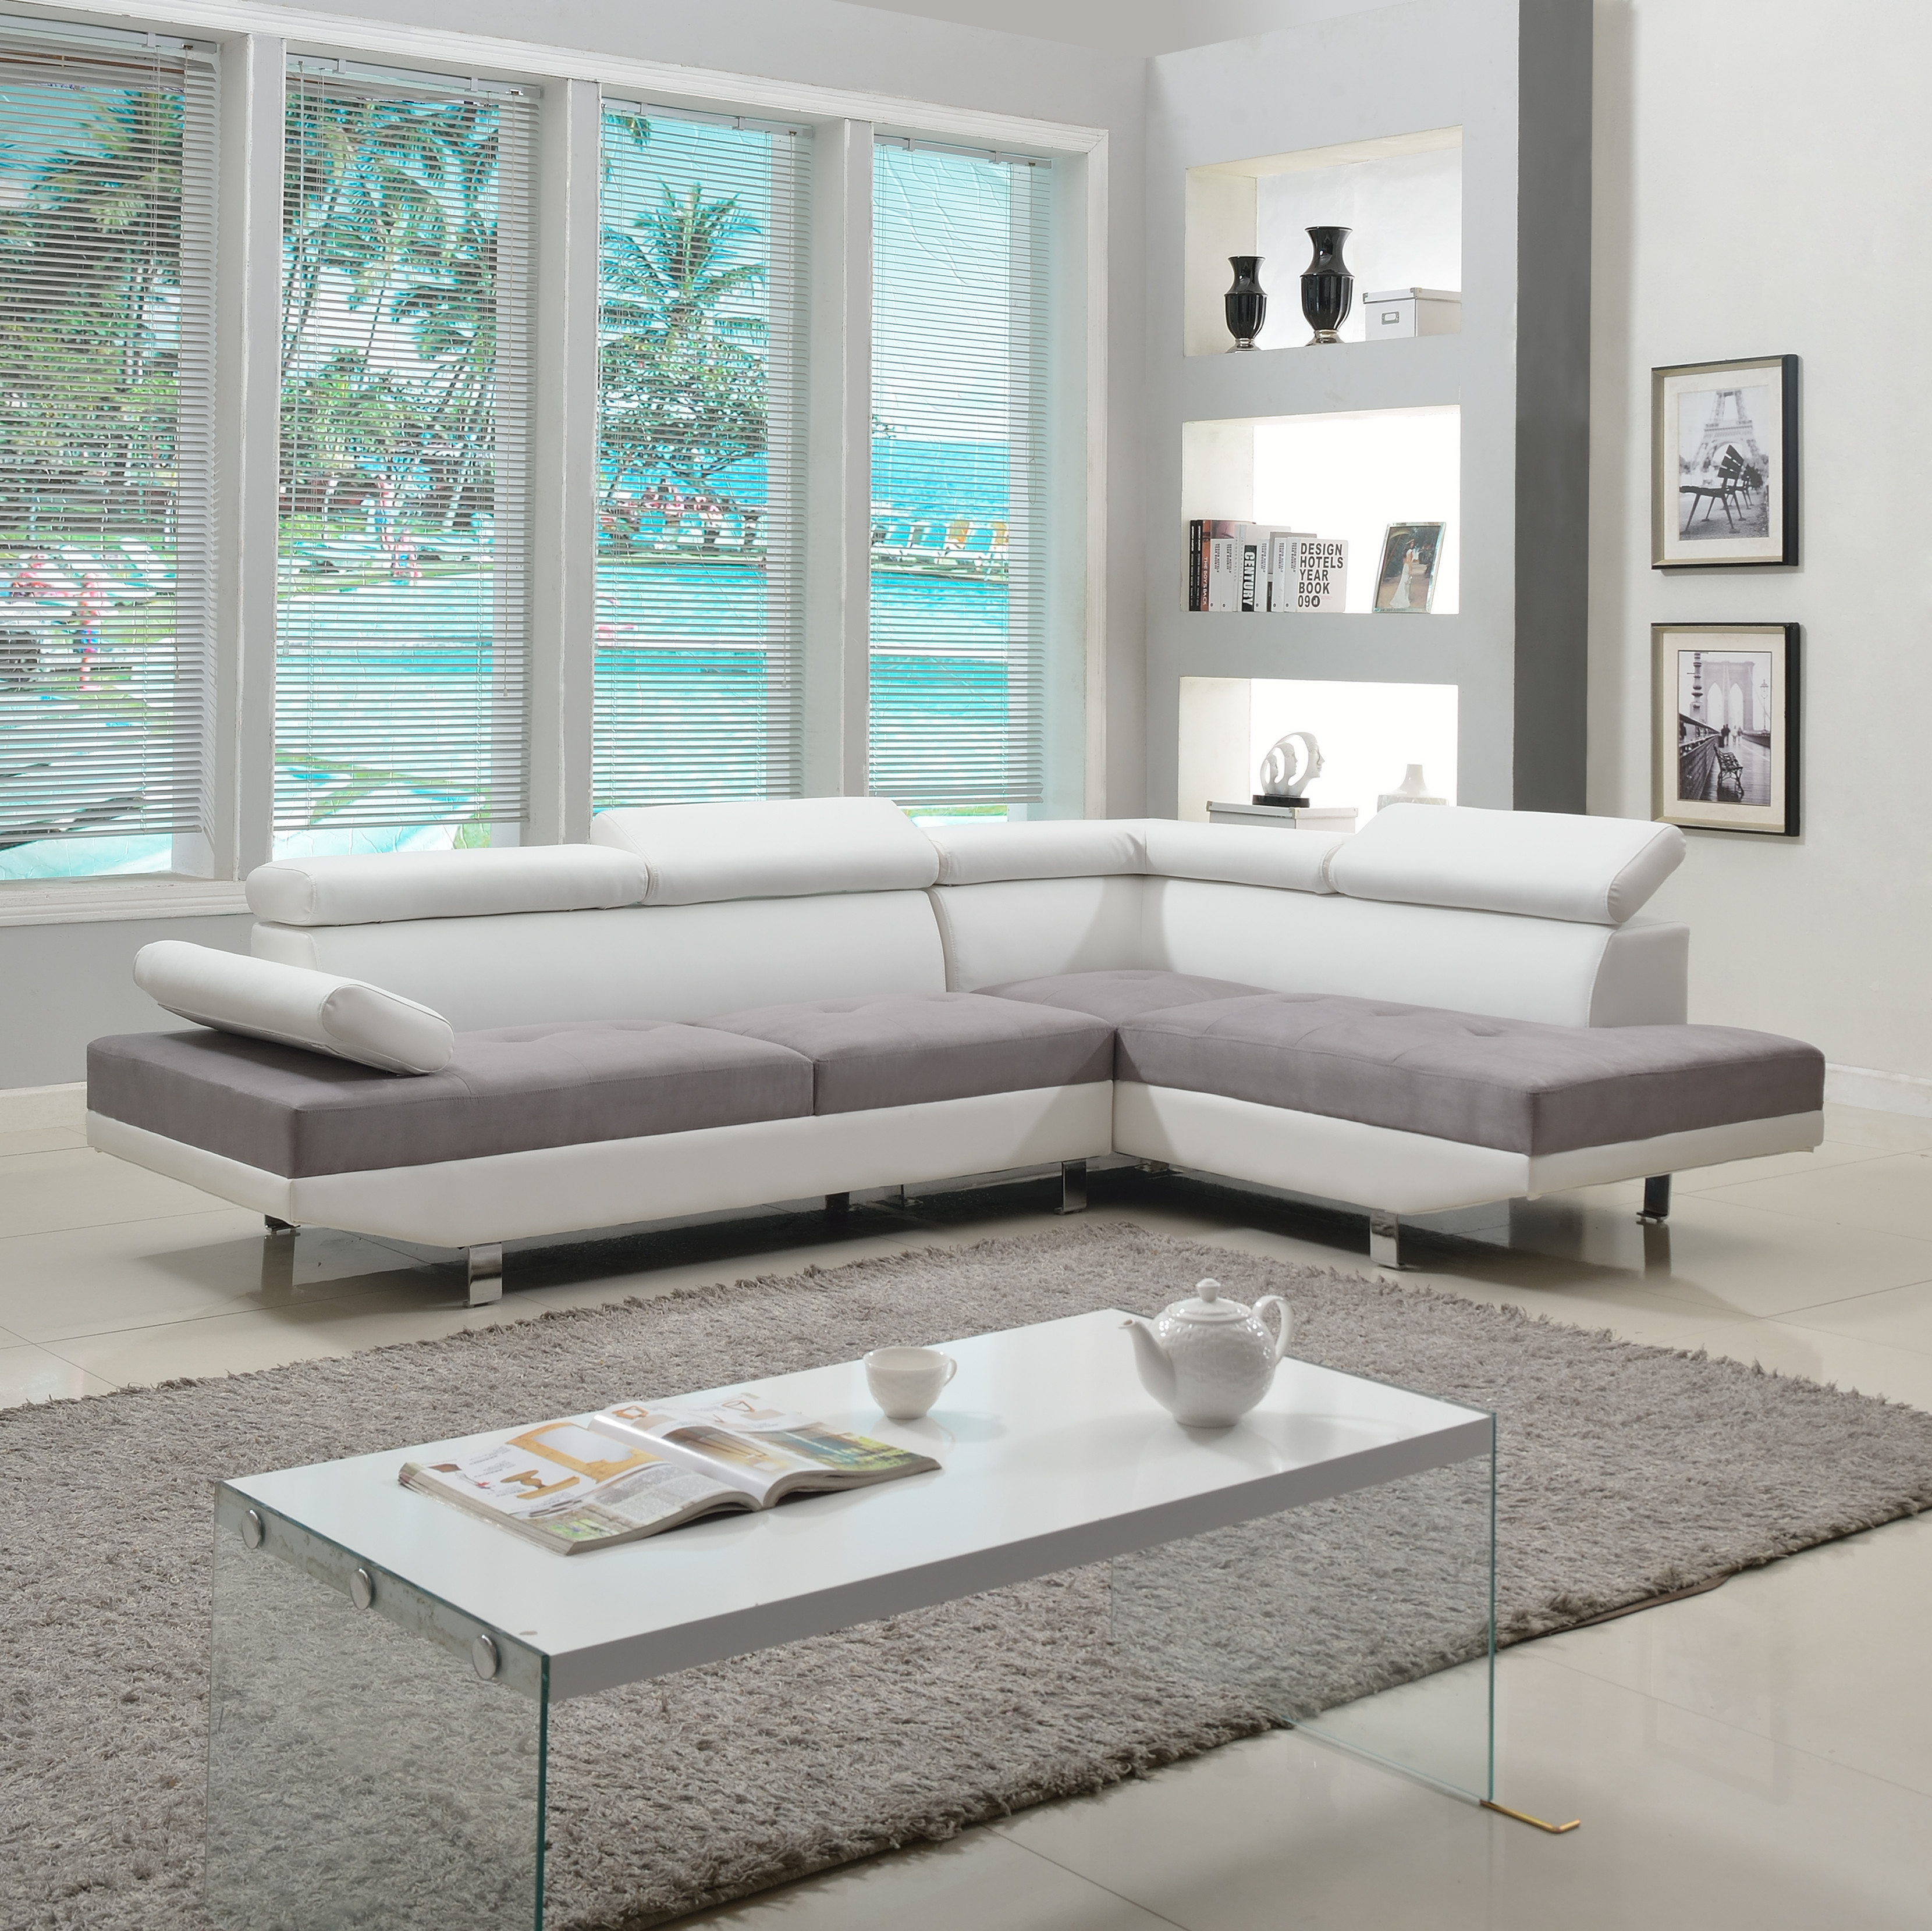 Best ideas about White Sectional Sofa . Save or Pin 2 Piece Modern Contemporary White Faux Leather Sectional Now.